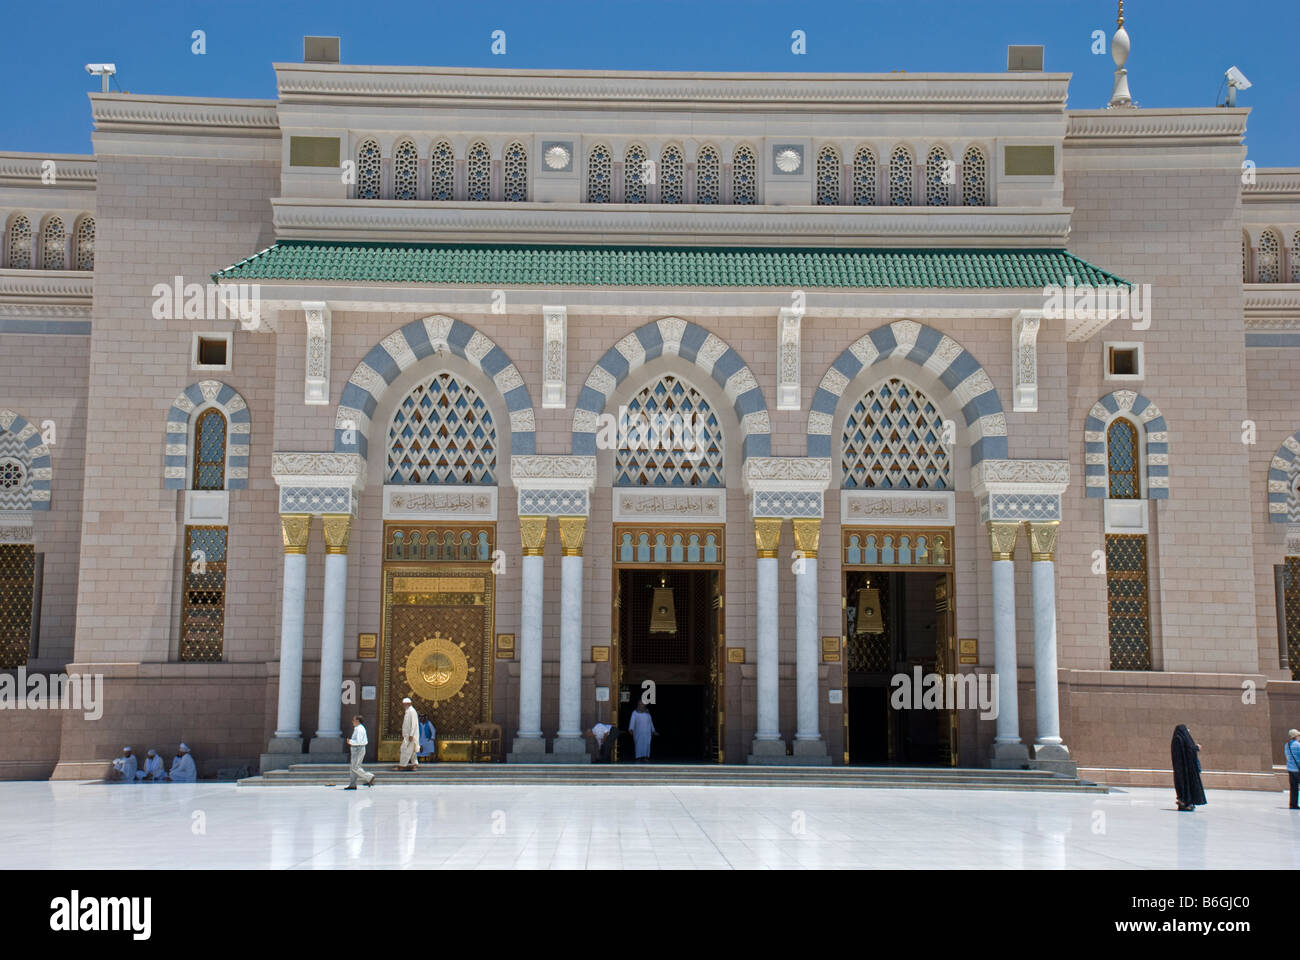 Doors of the Makkah gate The Mosque of the Prophet Masjid al Nabawi Madinah Saudi Arabia & Doors of the Makkah gate The Mosque of the Prophet Masjid al Nabawi ...